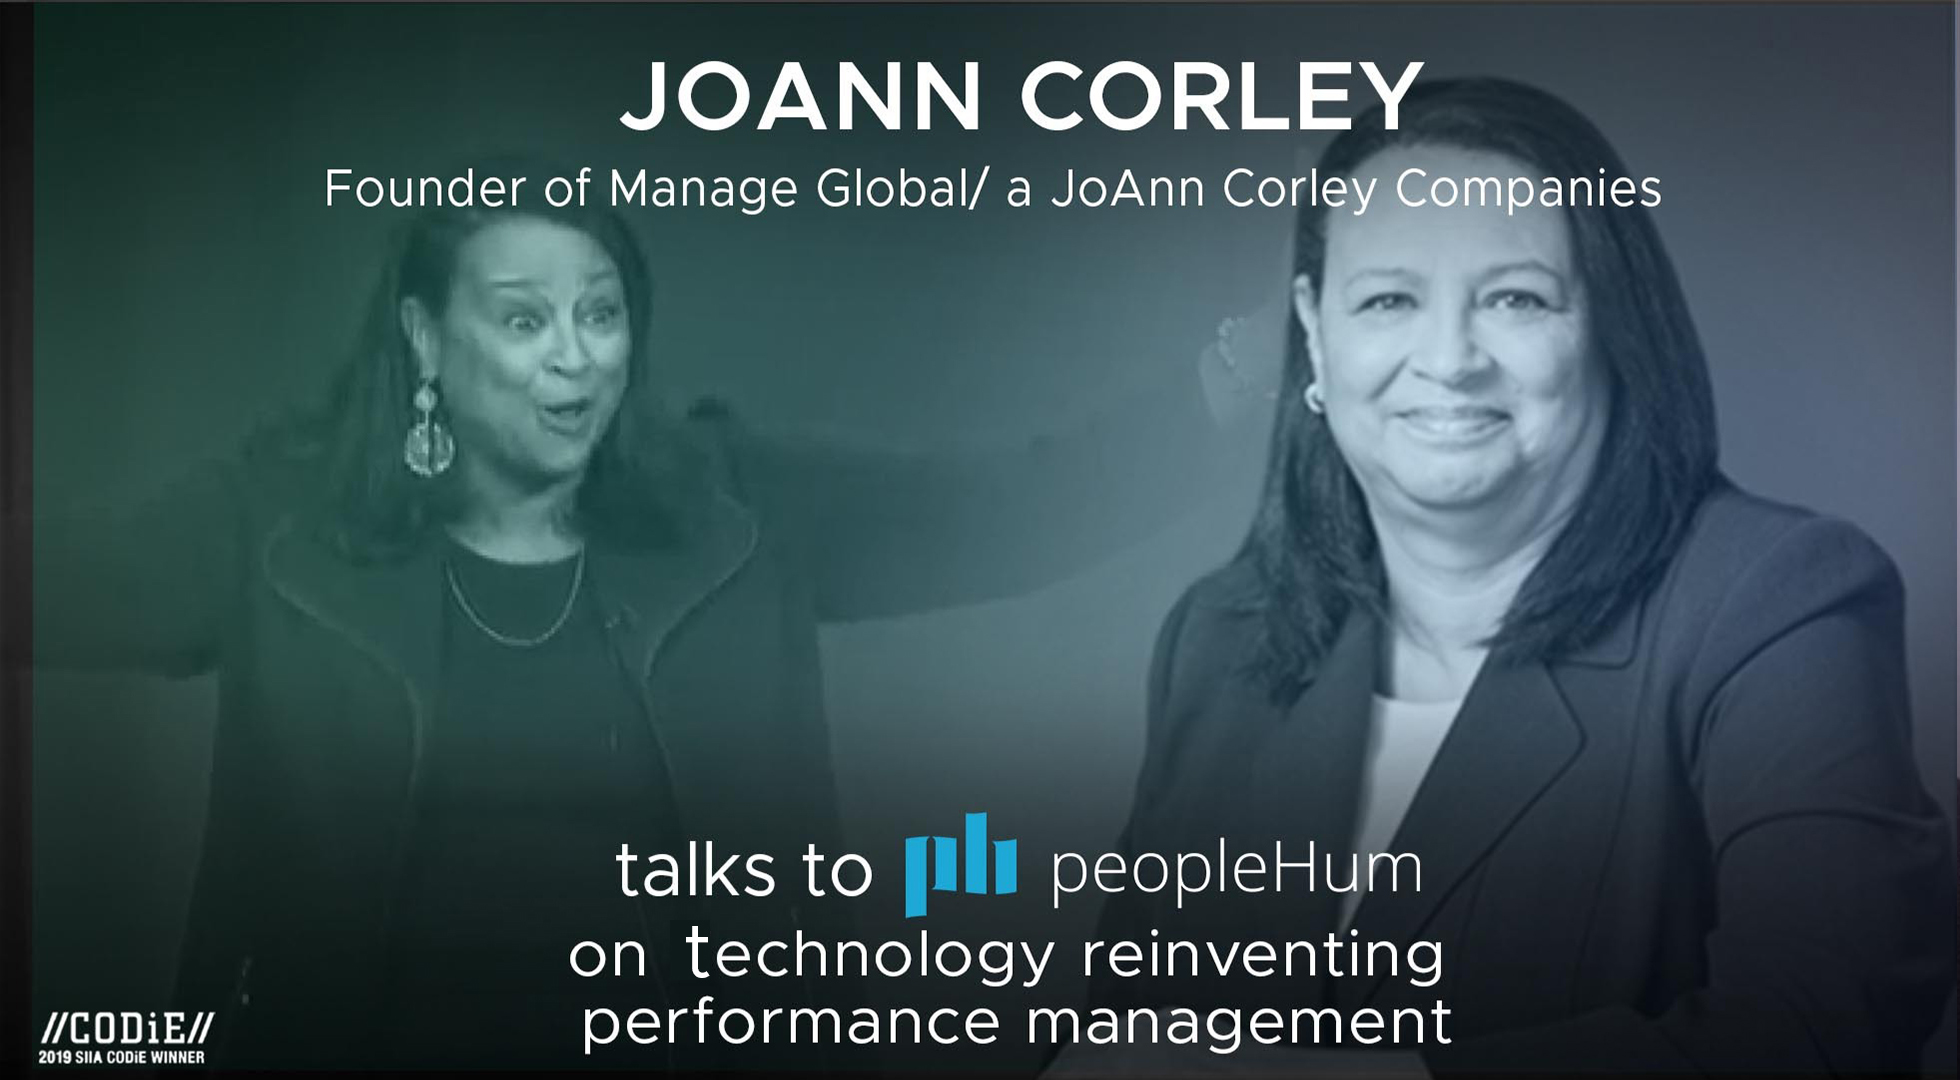 Technology reinventing performance management - Joann Corley [Interview]